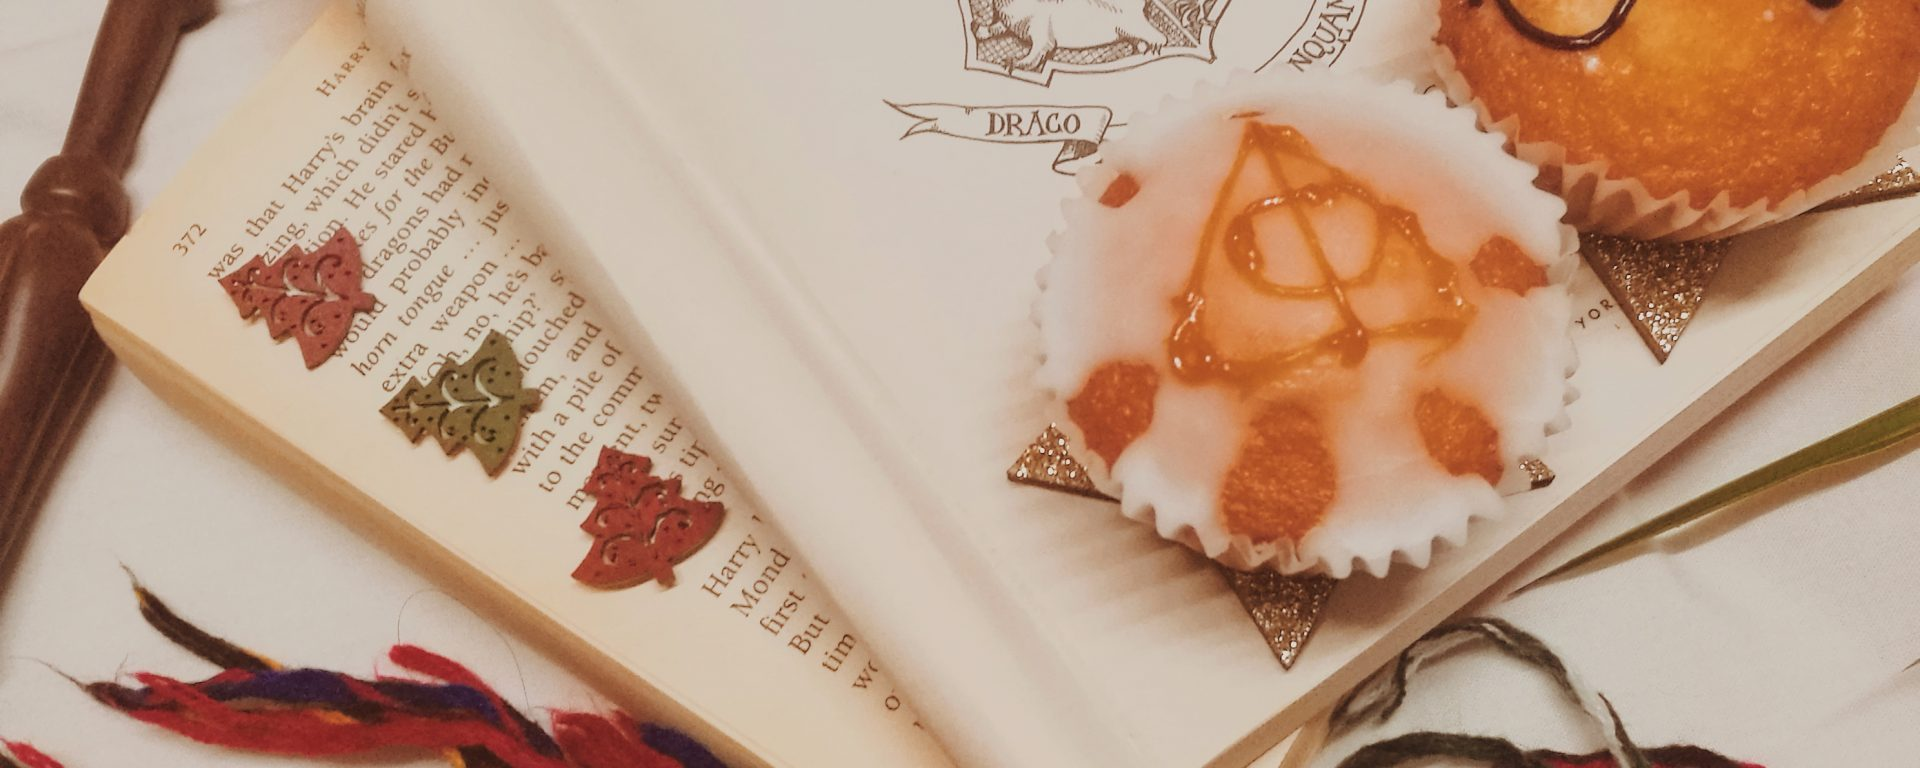 baking treats inspired by books and tv shows (harry potter) blogmas